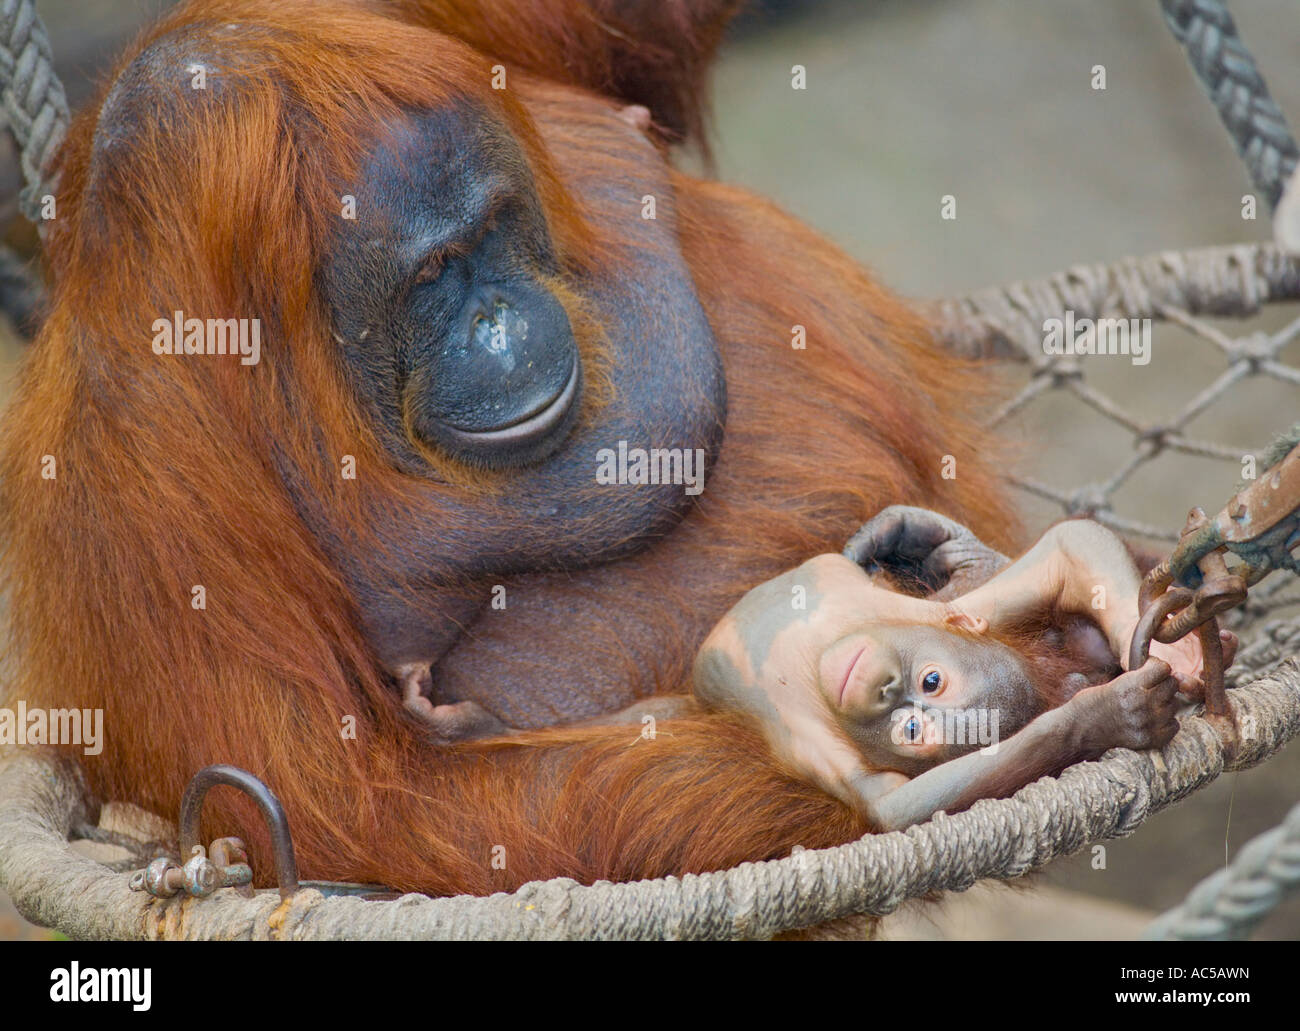 A 23 weeks old male orang utan baby (Pongo pygmaeus) sitting together with its mother in a hammock Stock Photo